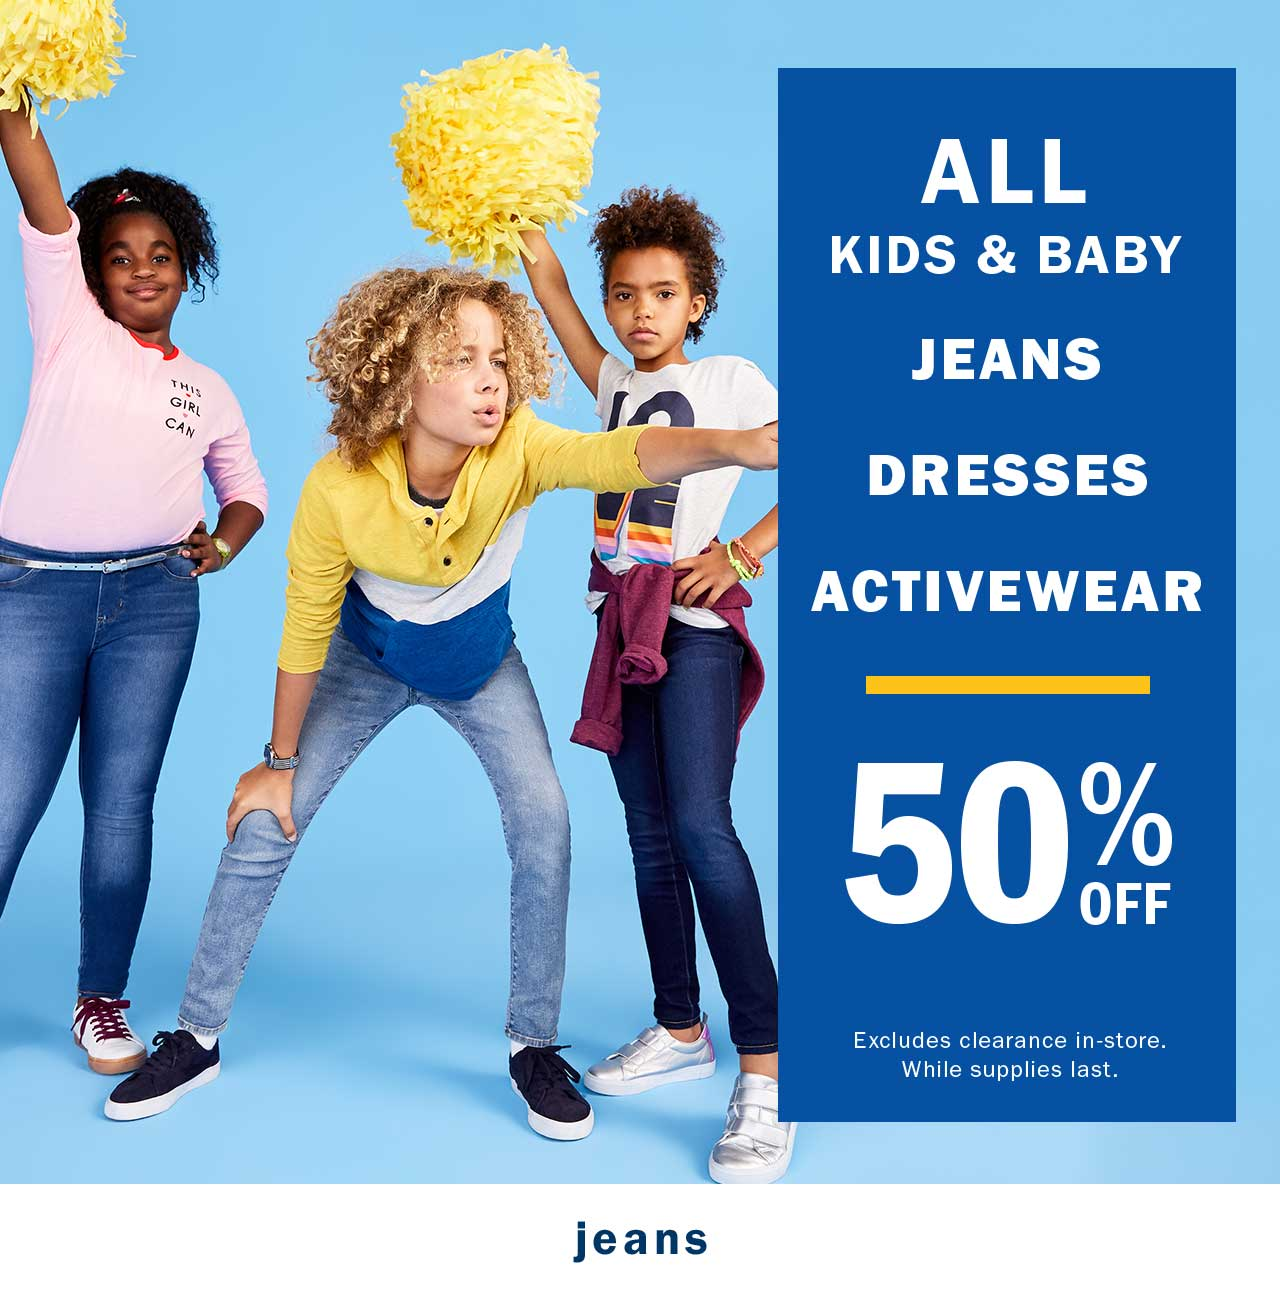 ALL KIDS & BABY JEANS DRESSES ACTIVEWEAR | 50% OFF